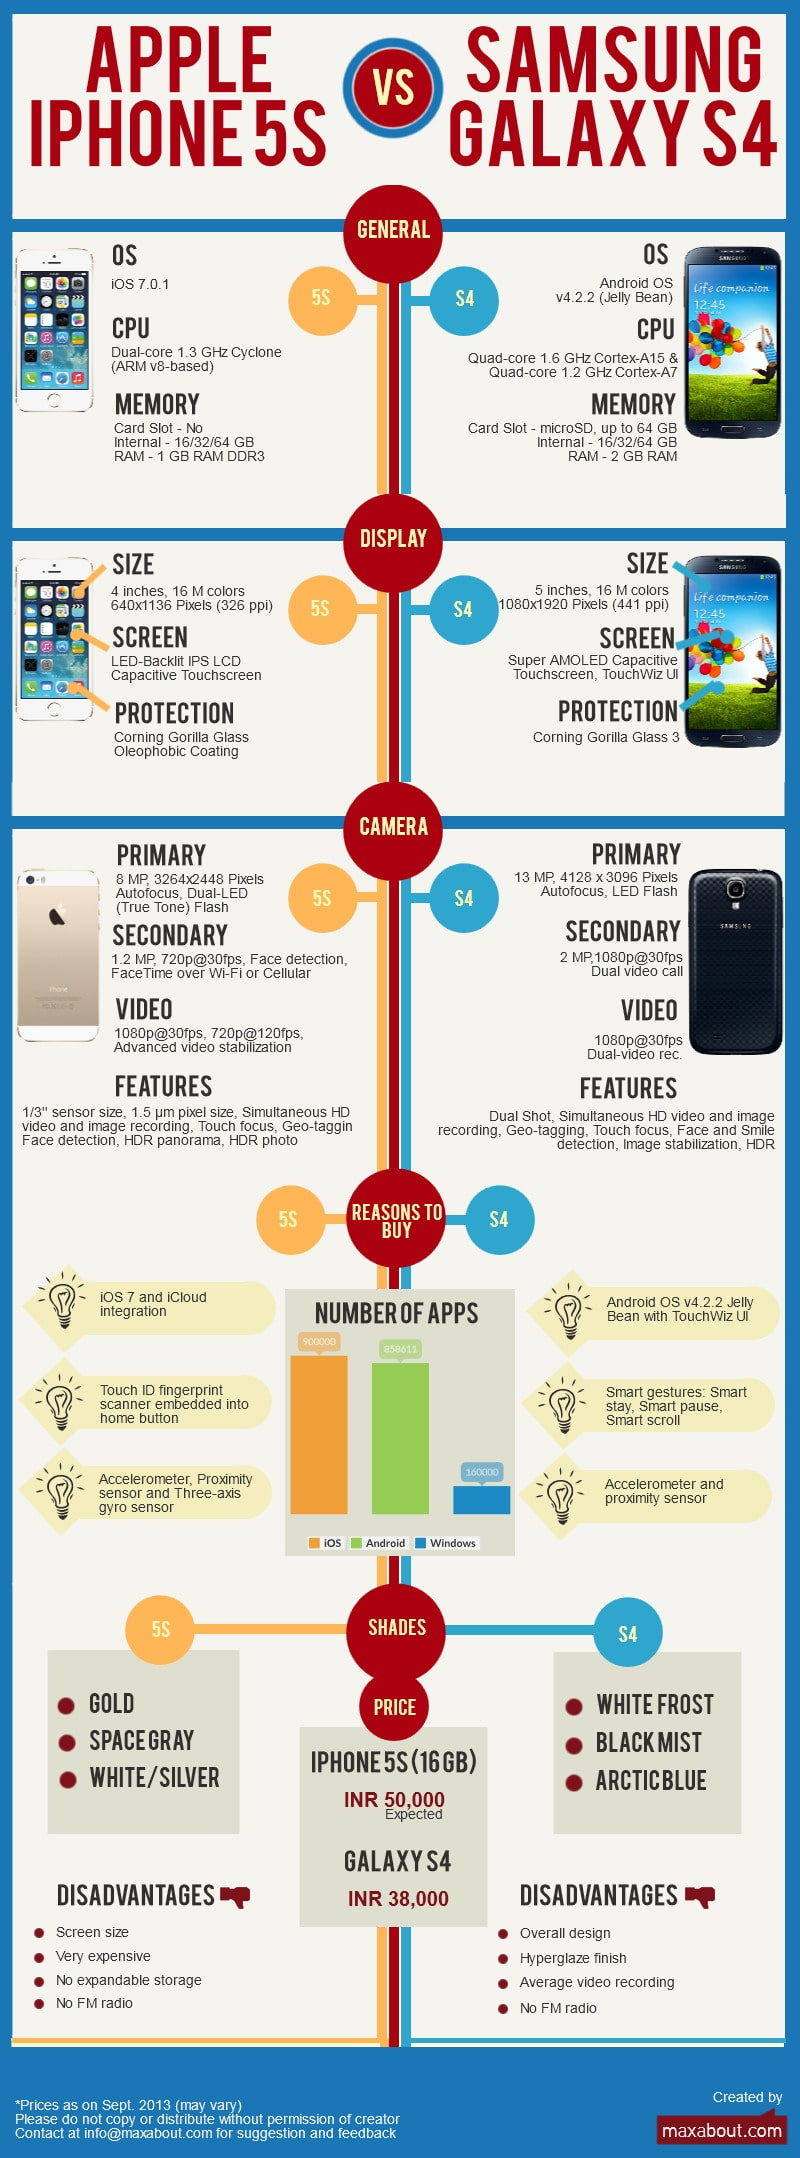 Apple iPhone 5S vs. Samsung Galaxy S4 Comparison [Infographic]